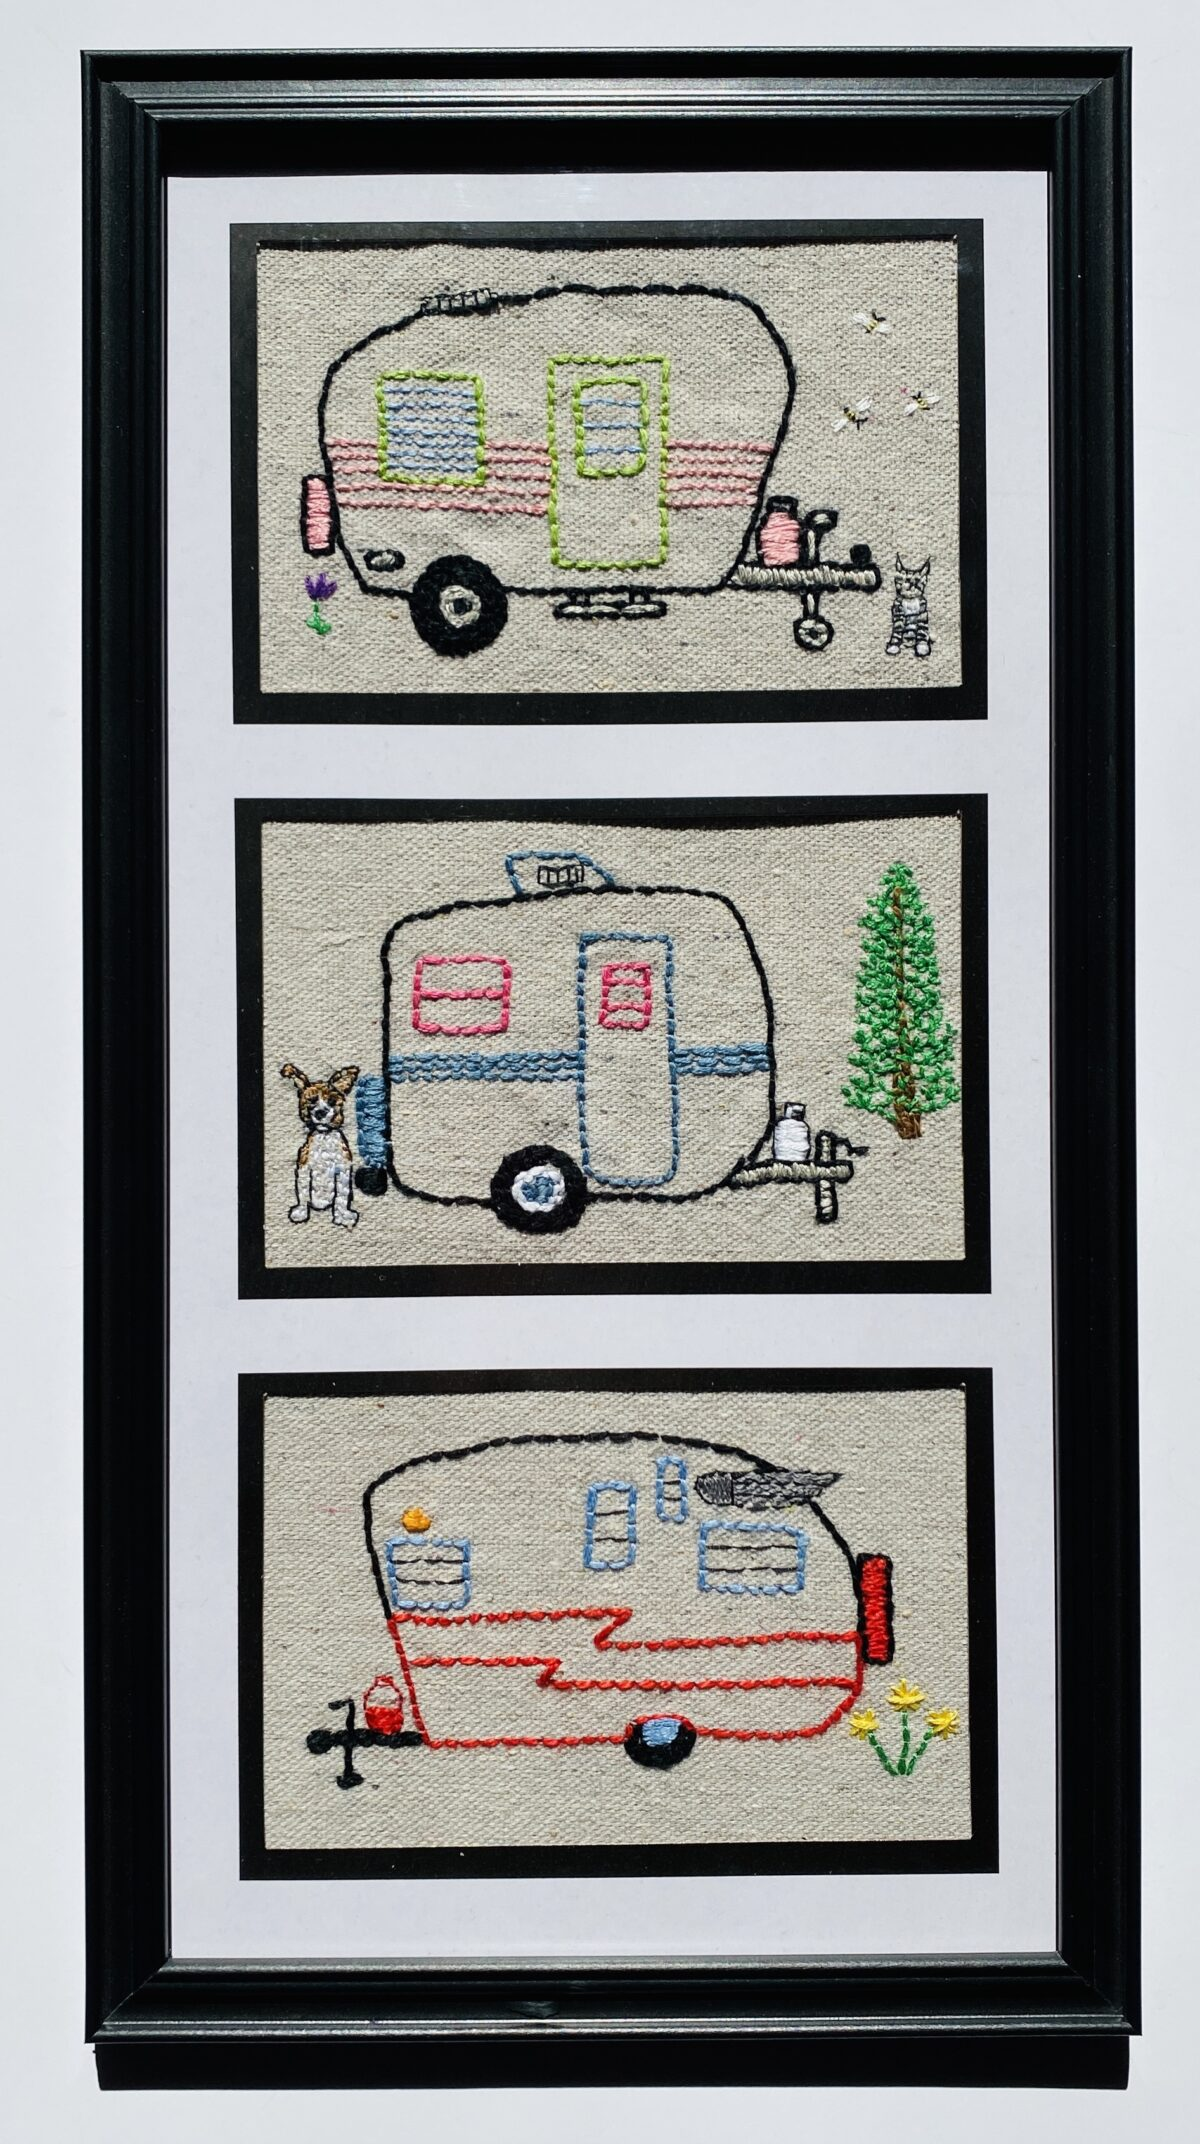 Camper Embroidery Inspiration and Design